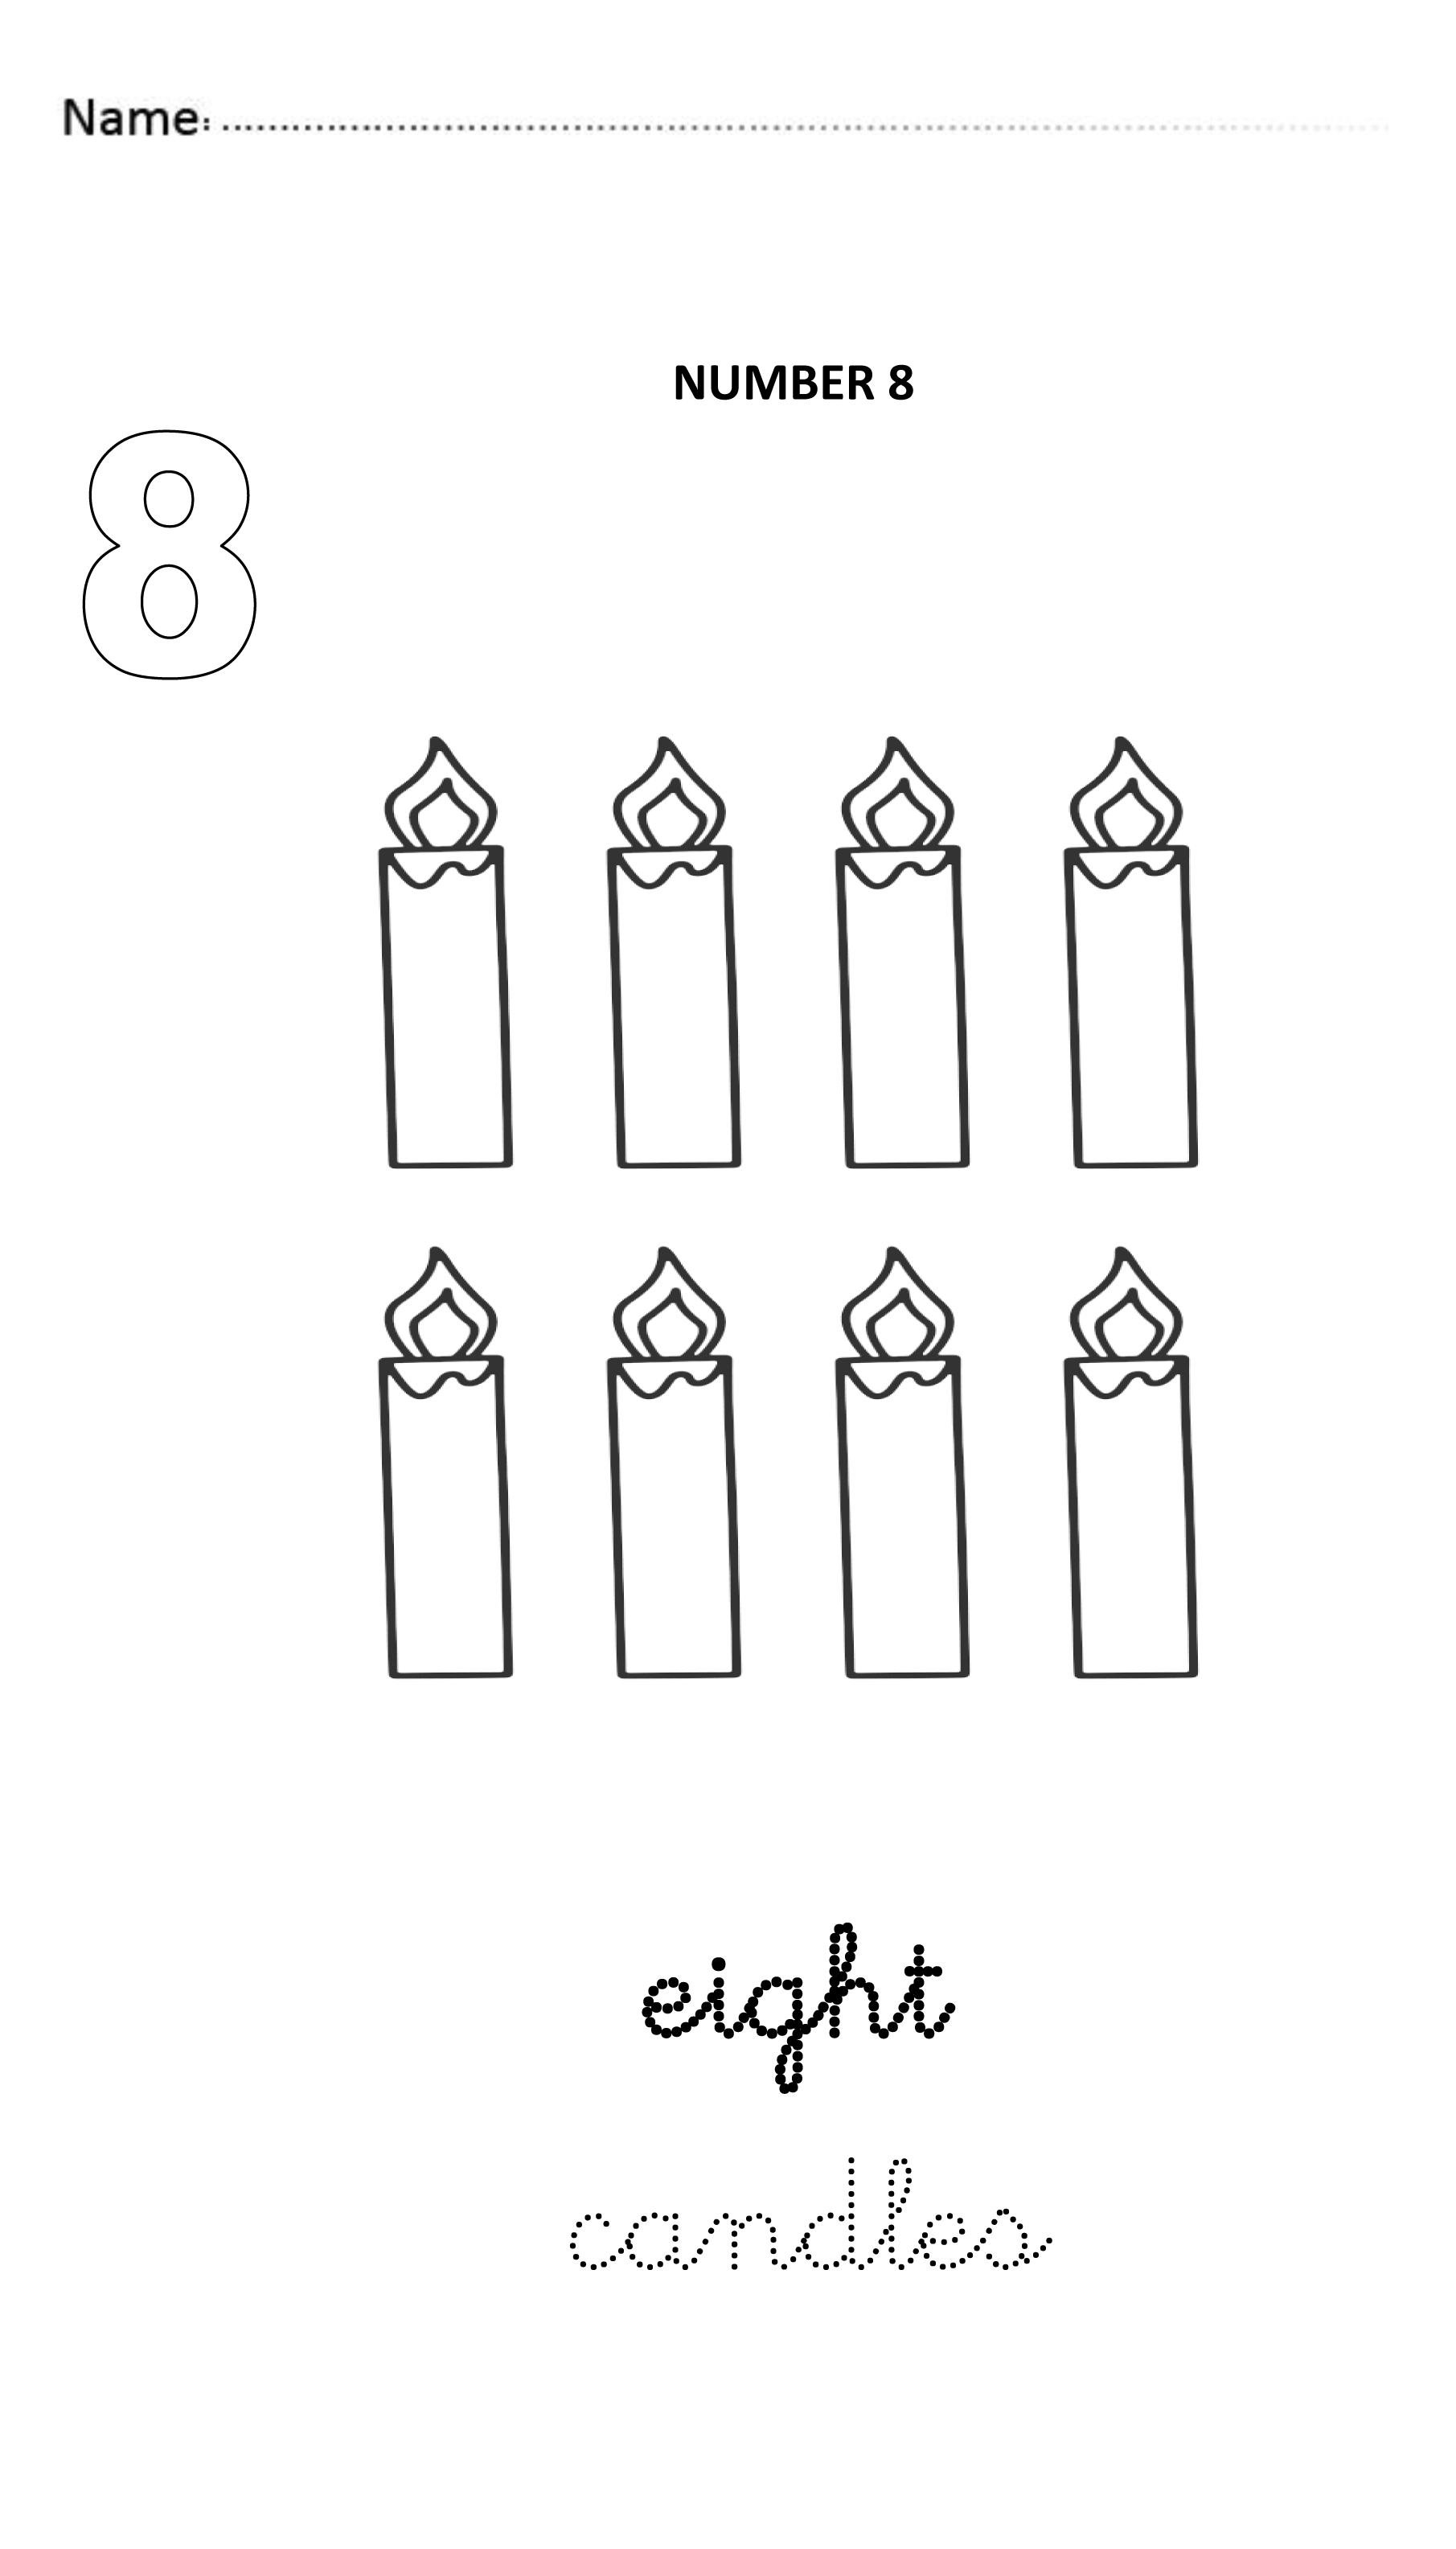 Number 8 Easy And Visual Worksheet To Teach Numbers For